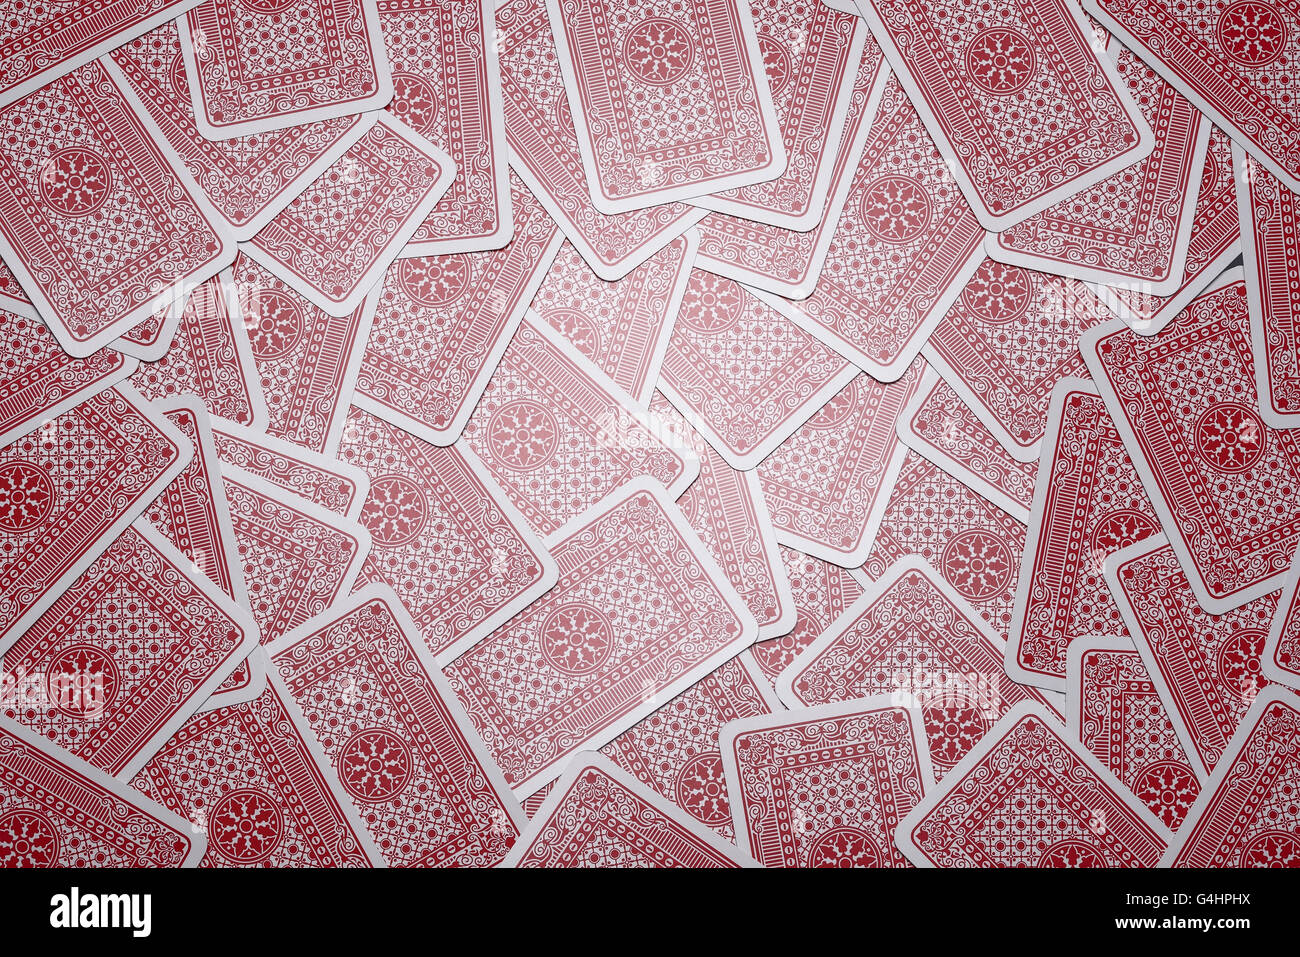 Reverse side of playing cards - Stock Image